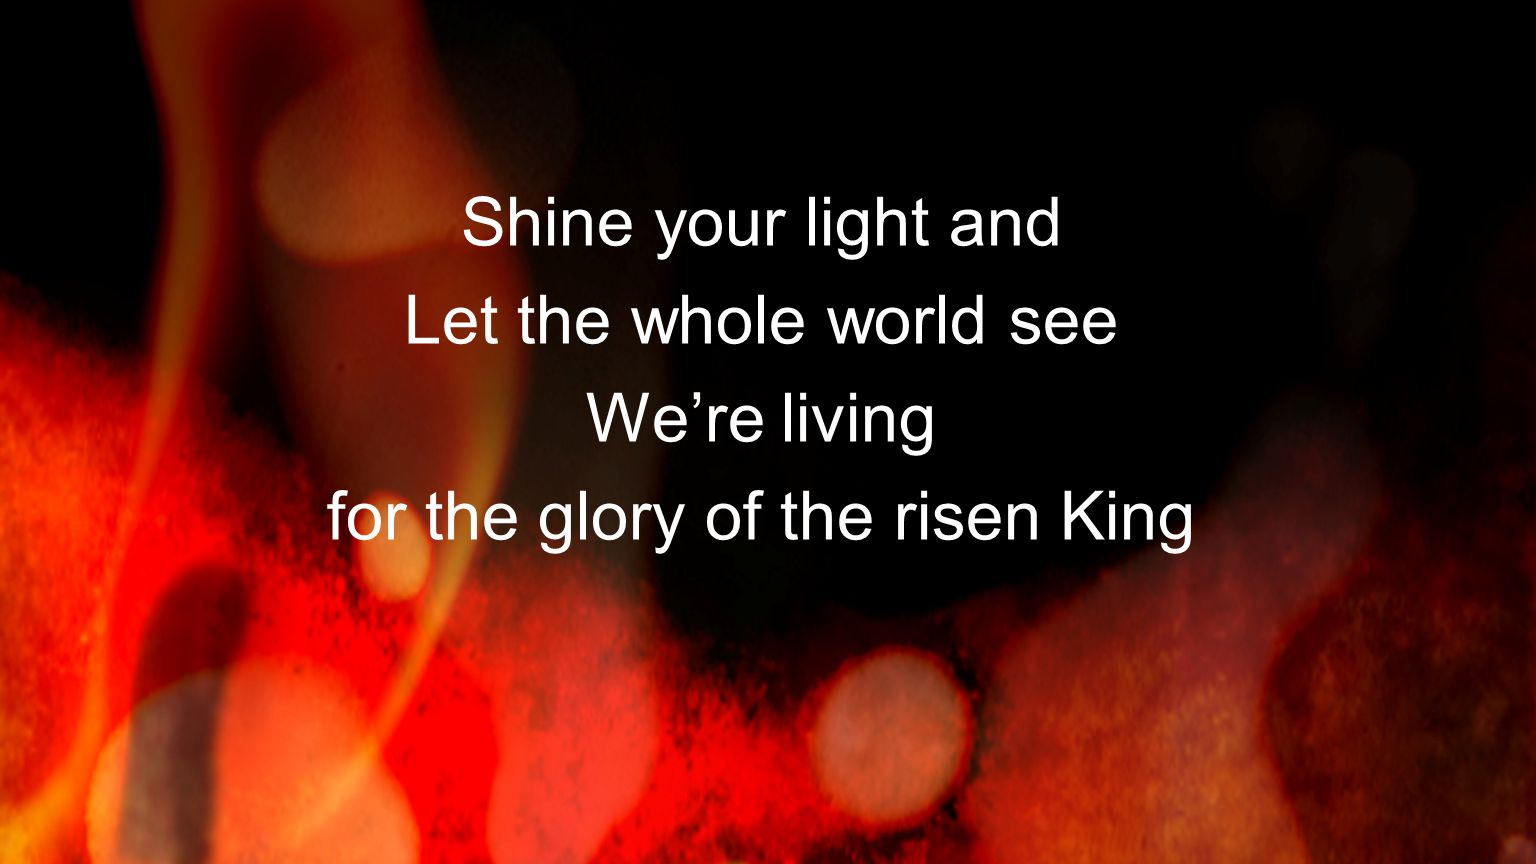 for the glory of the risen King